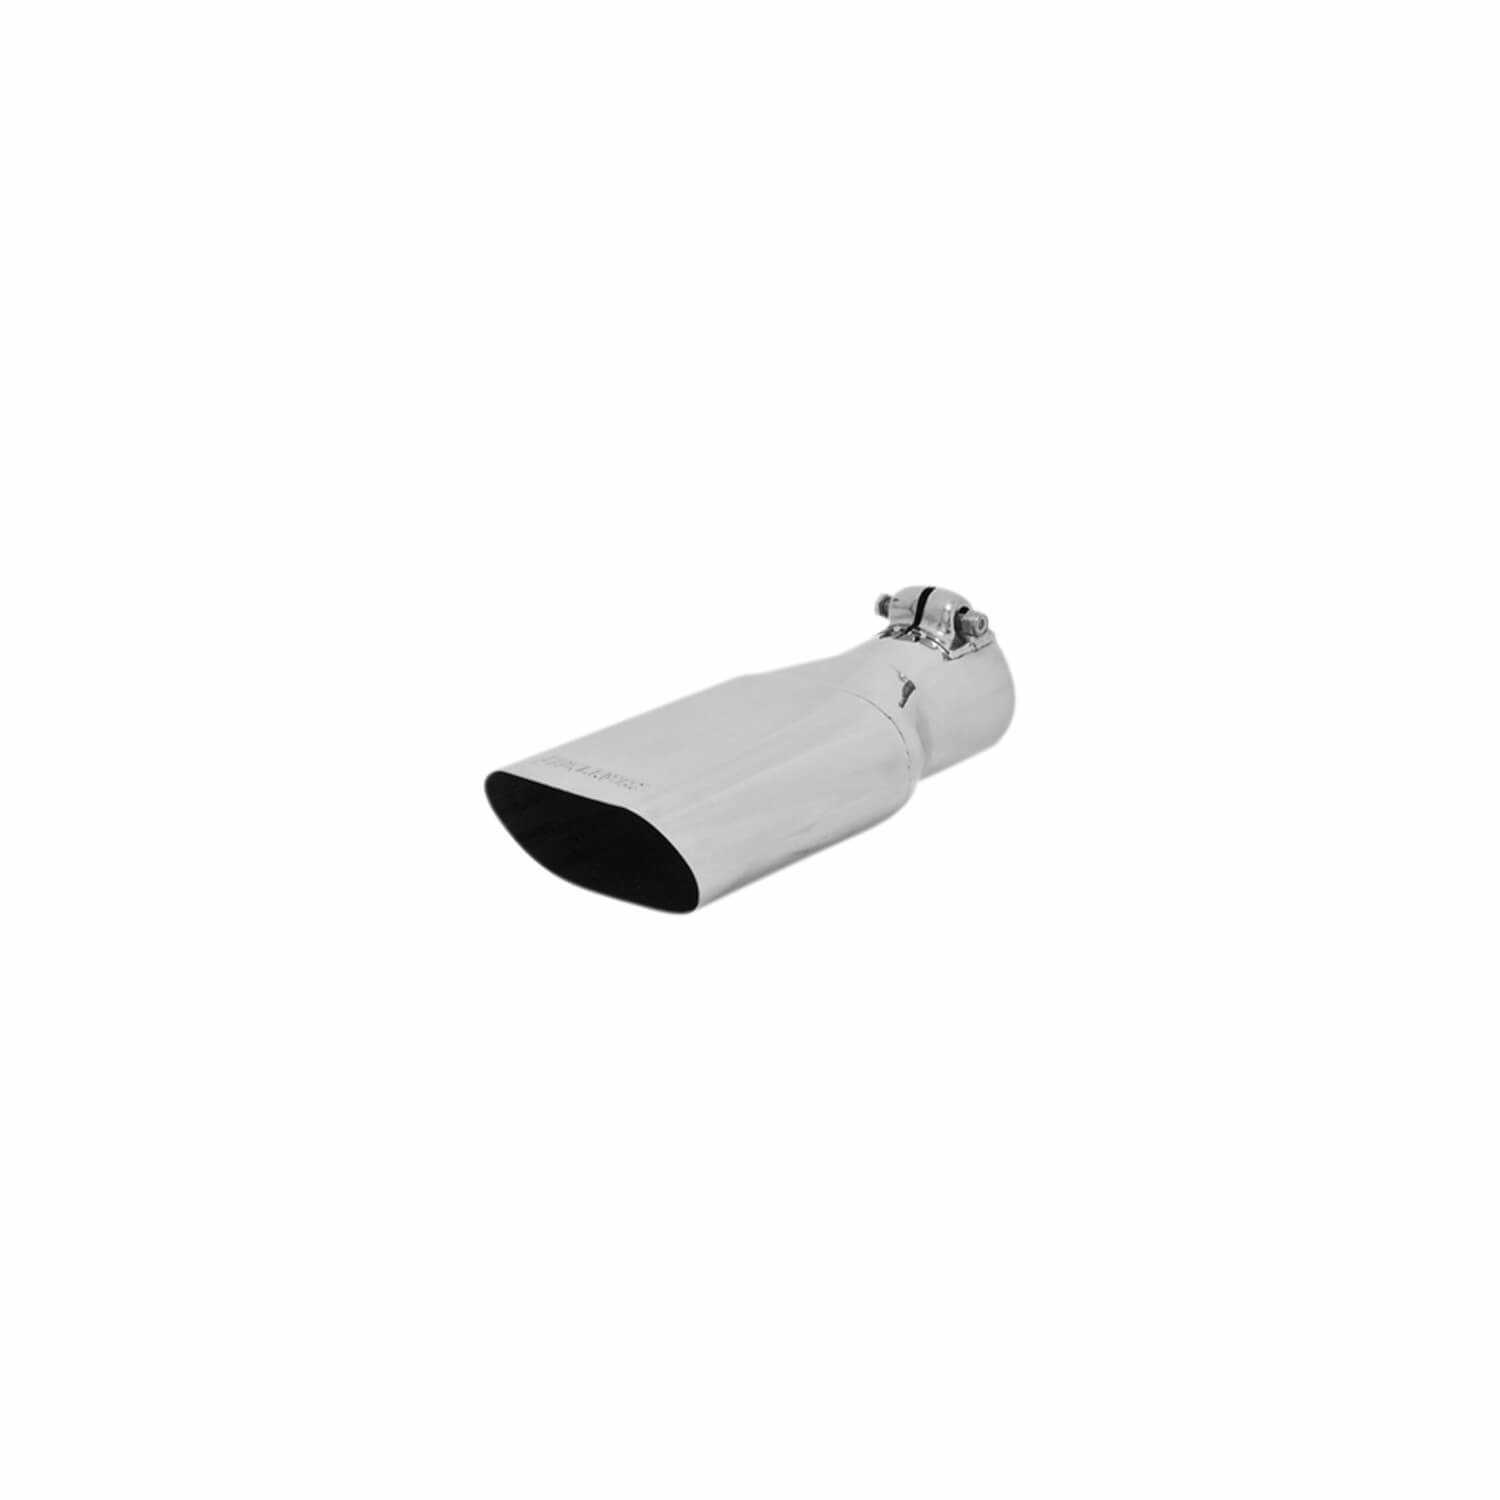 Flowmaster Stainless Steel Exhaust Tip 15385